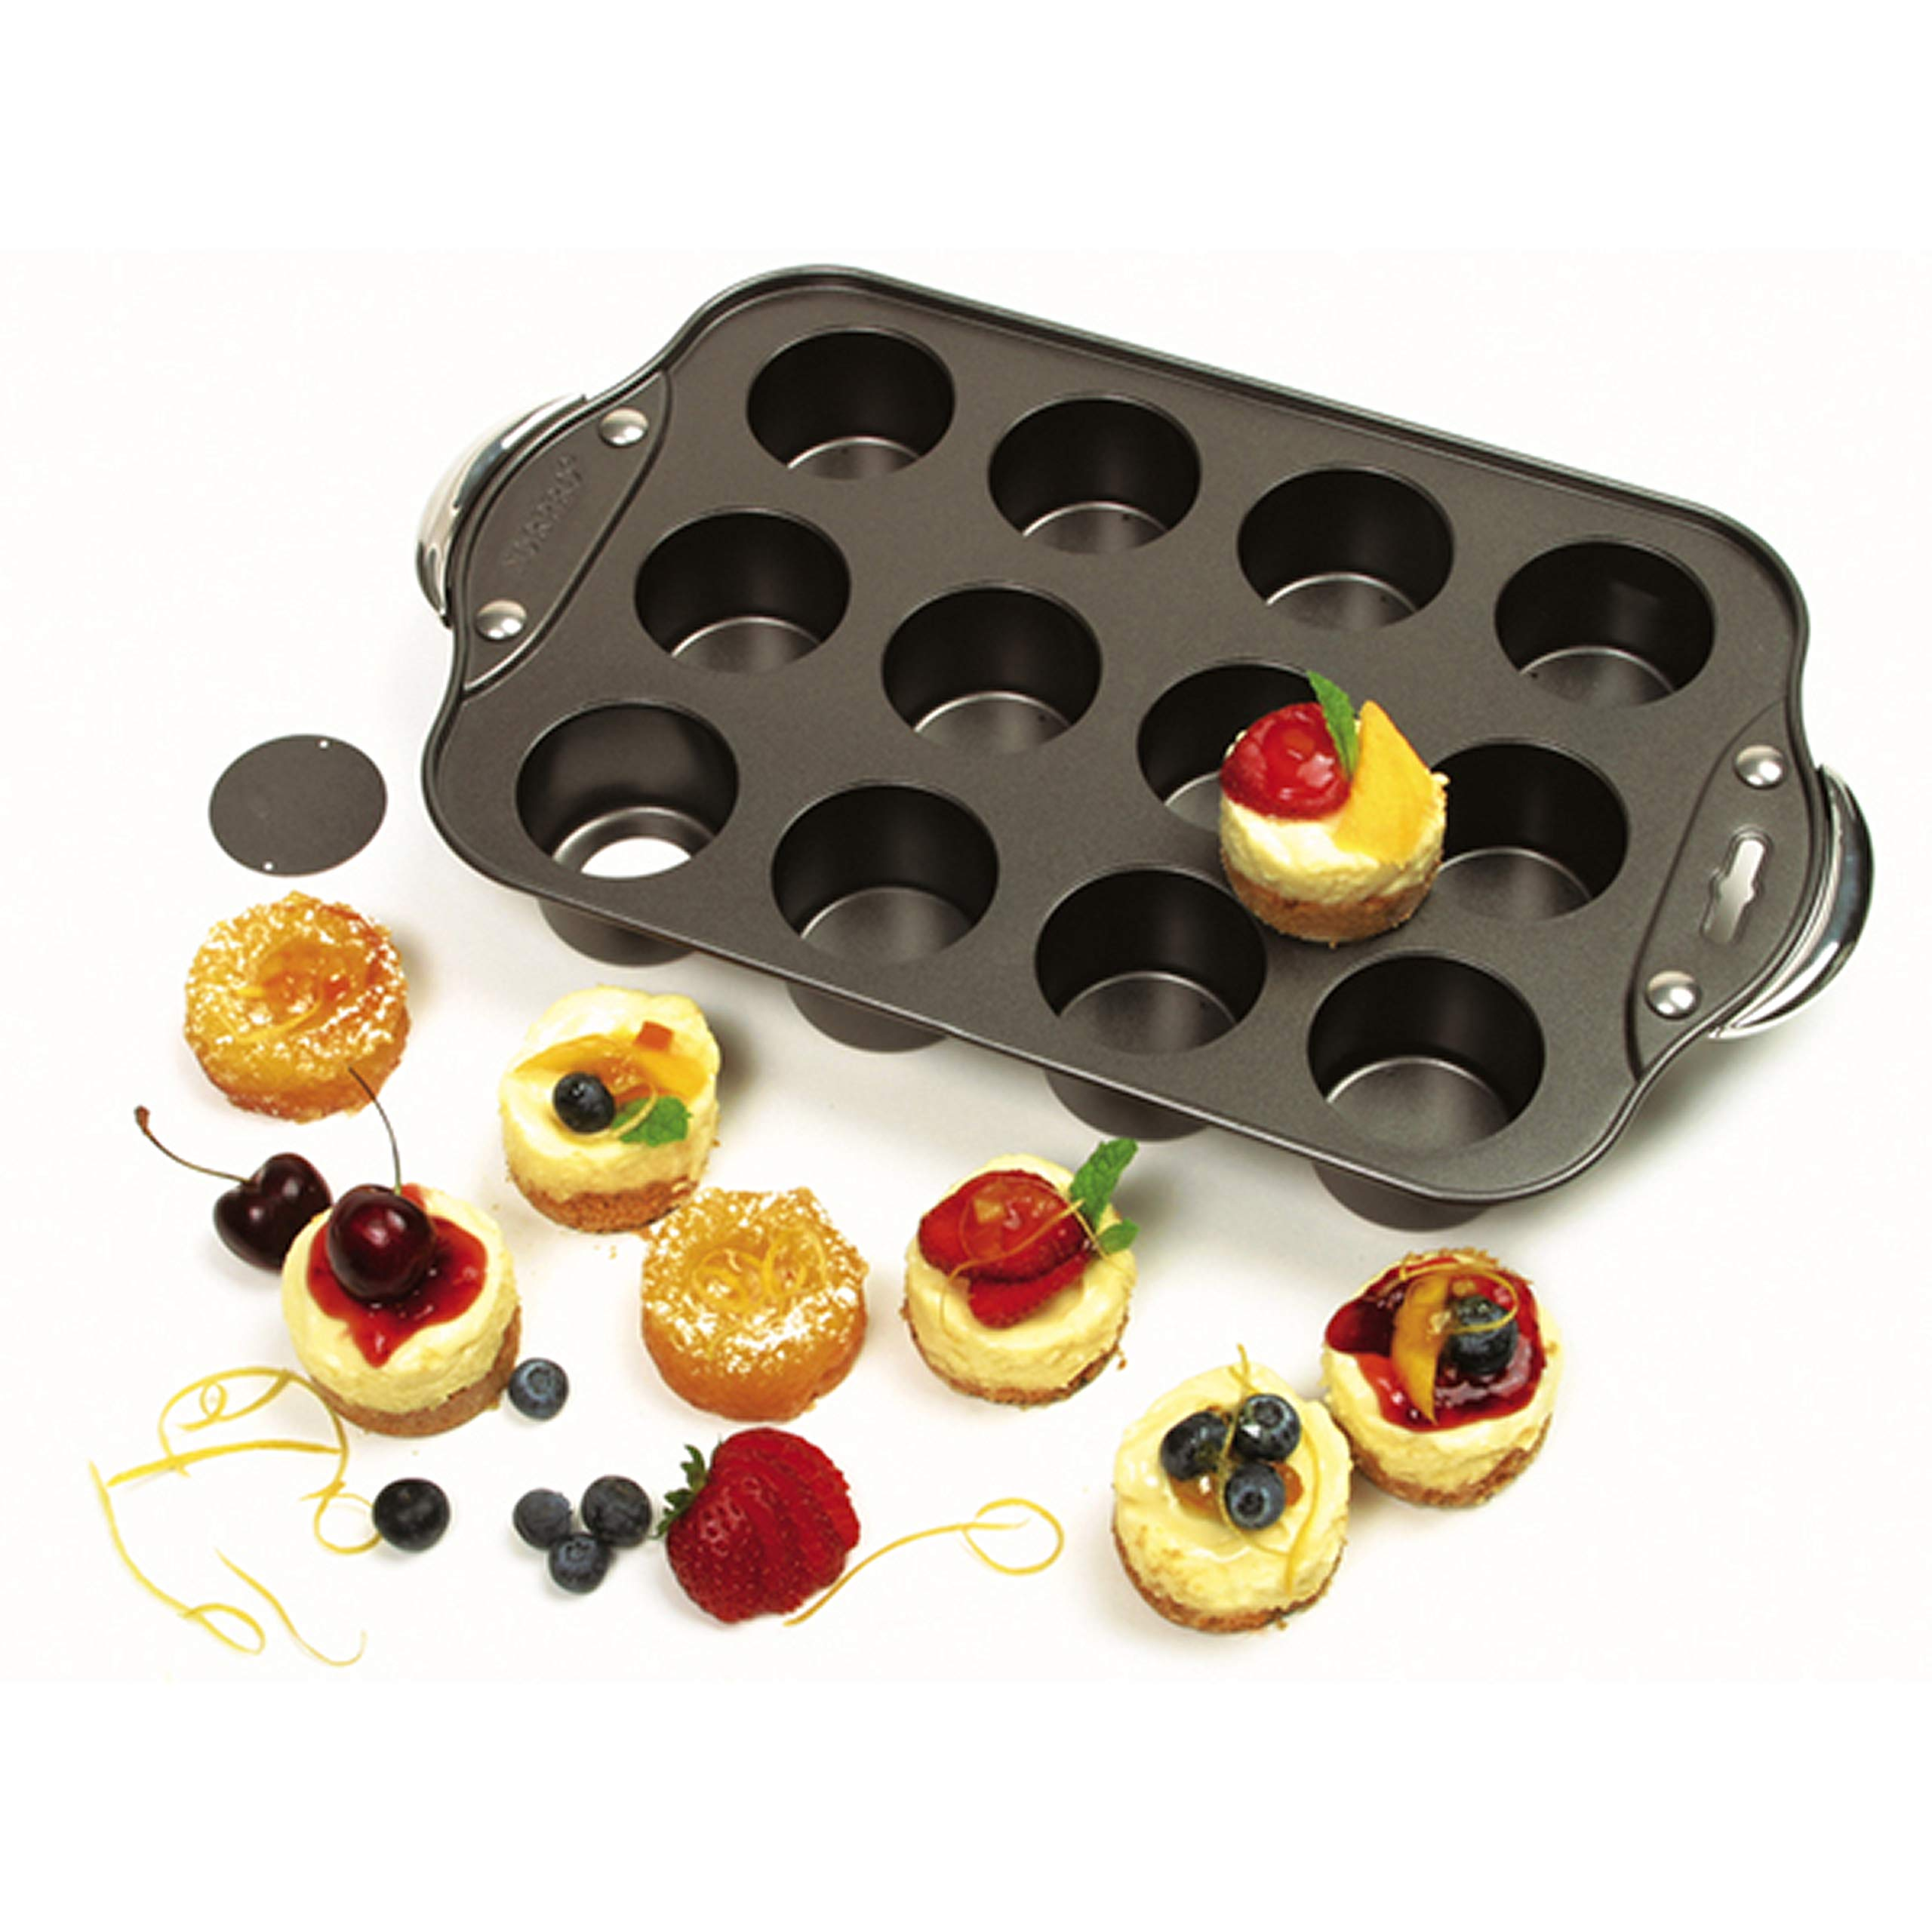 Norpro Nonstick Mini Cheesecake Pan with Handles, 12 count by Norpro